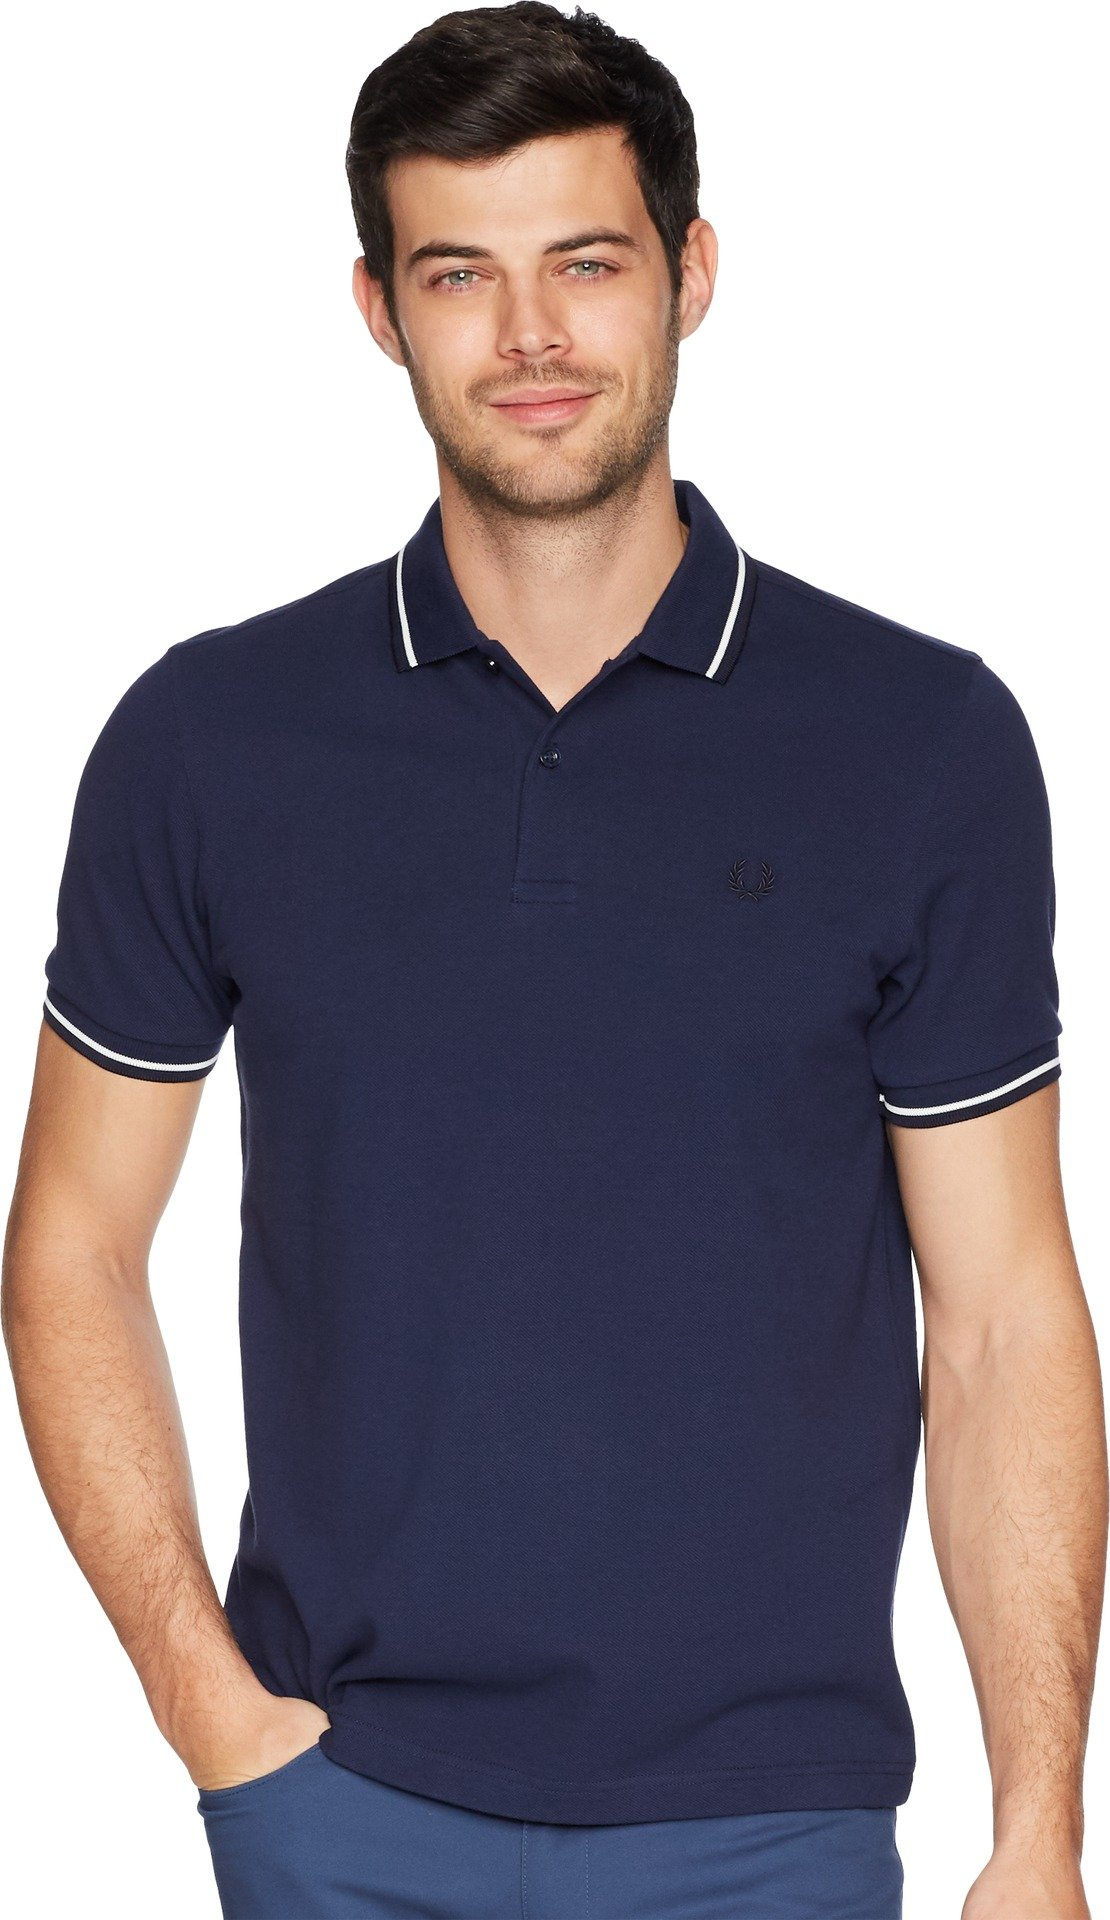 Fred Perry Men's Twin Tipped Shirt, Carbon Blue, Large